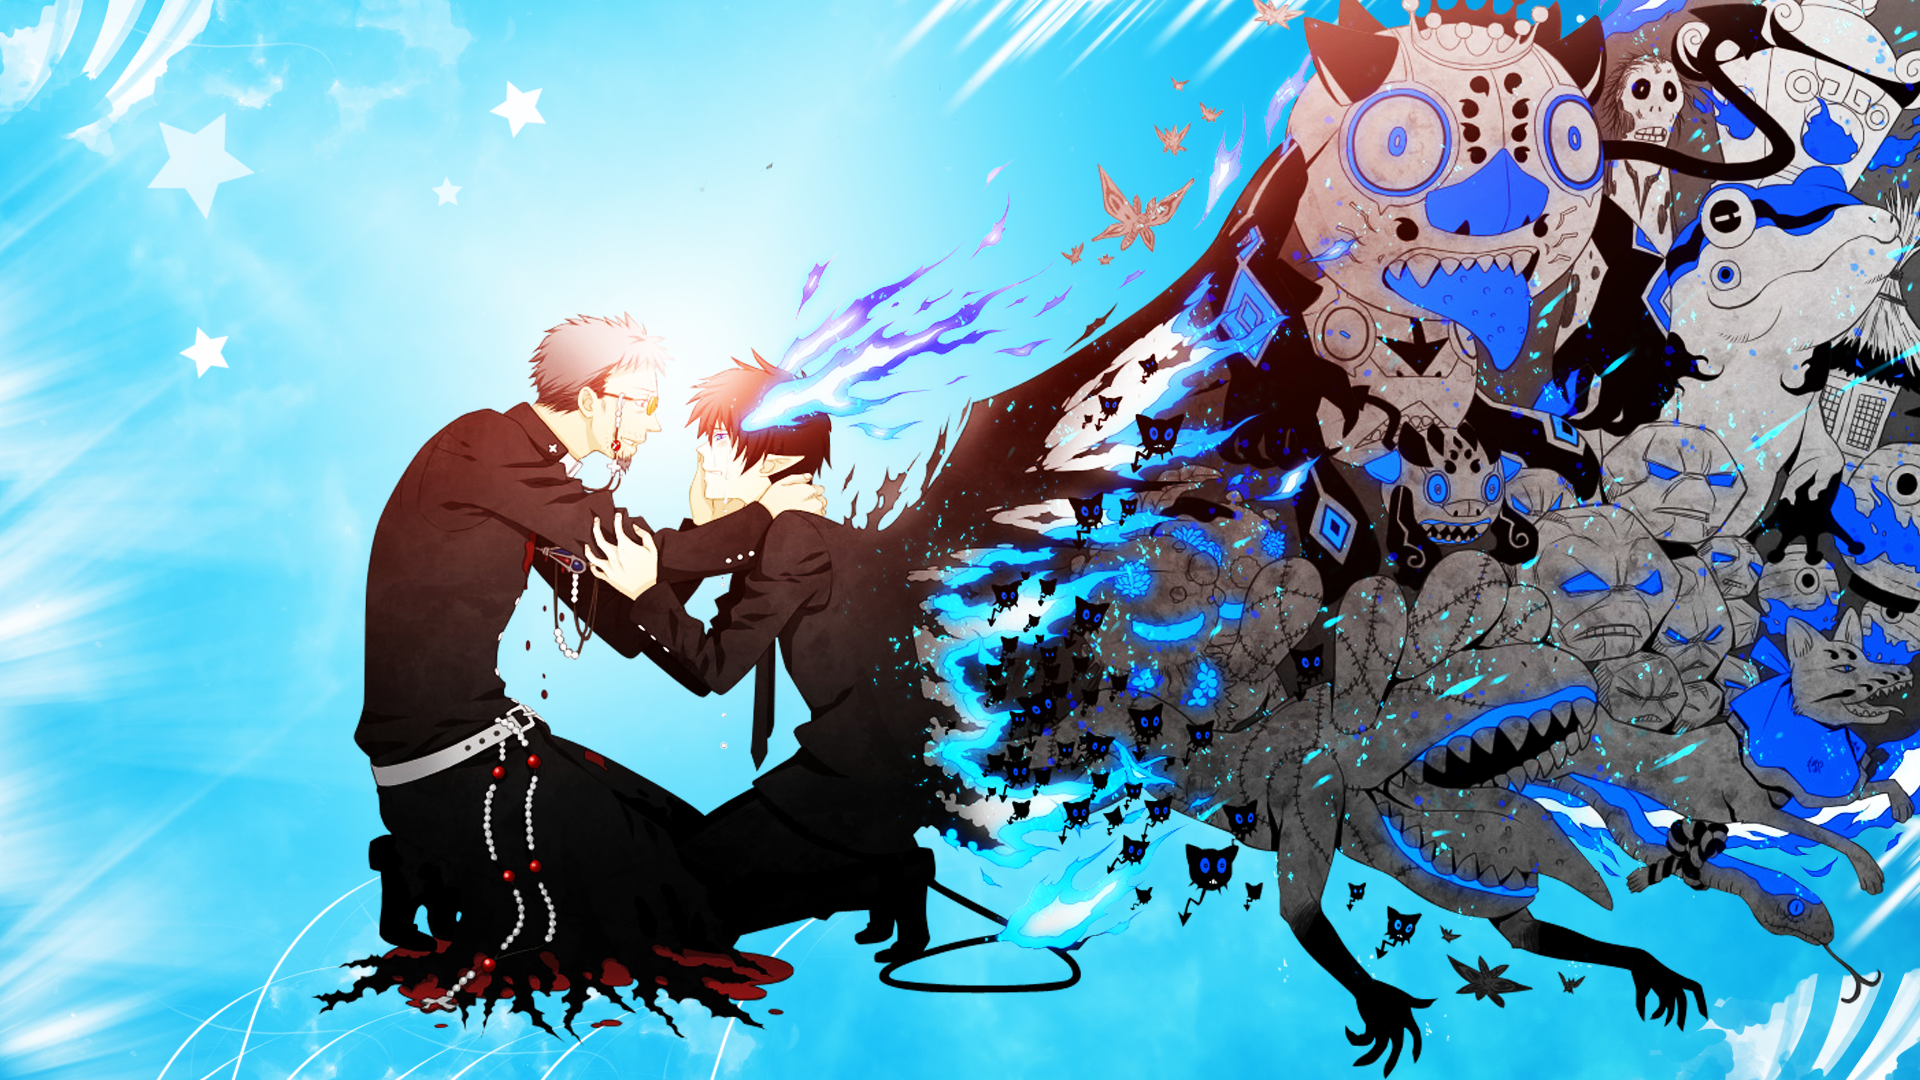 <b>Ao No Exorcist</b> Wallpaper - WallpaperSafari